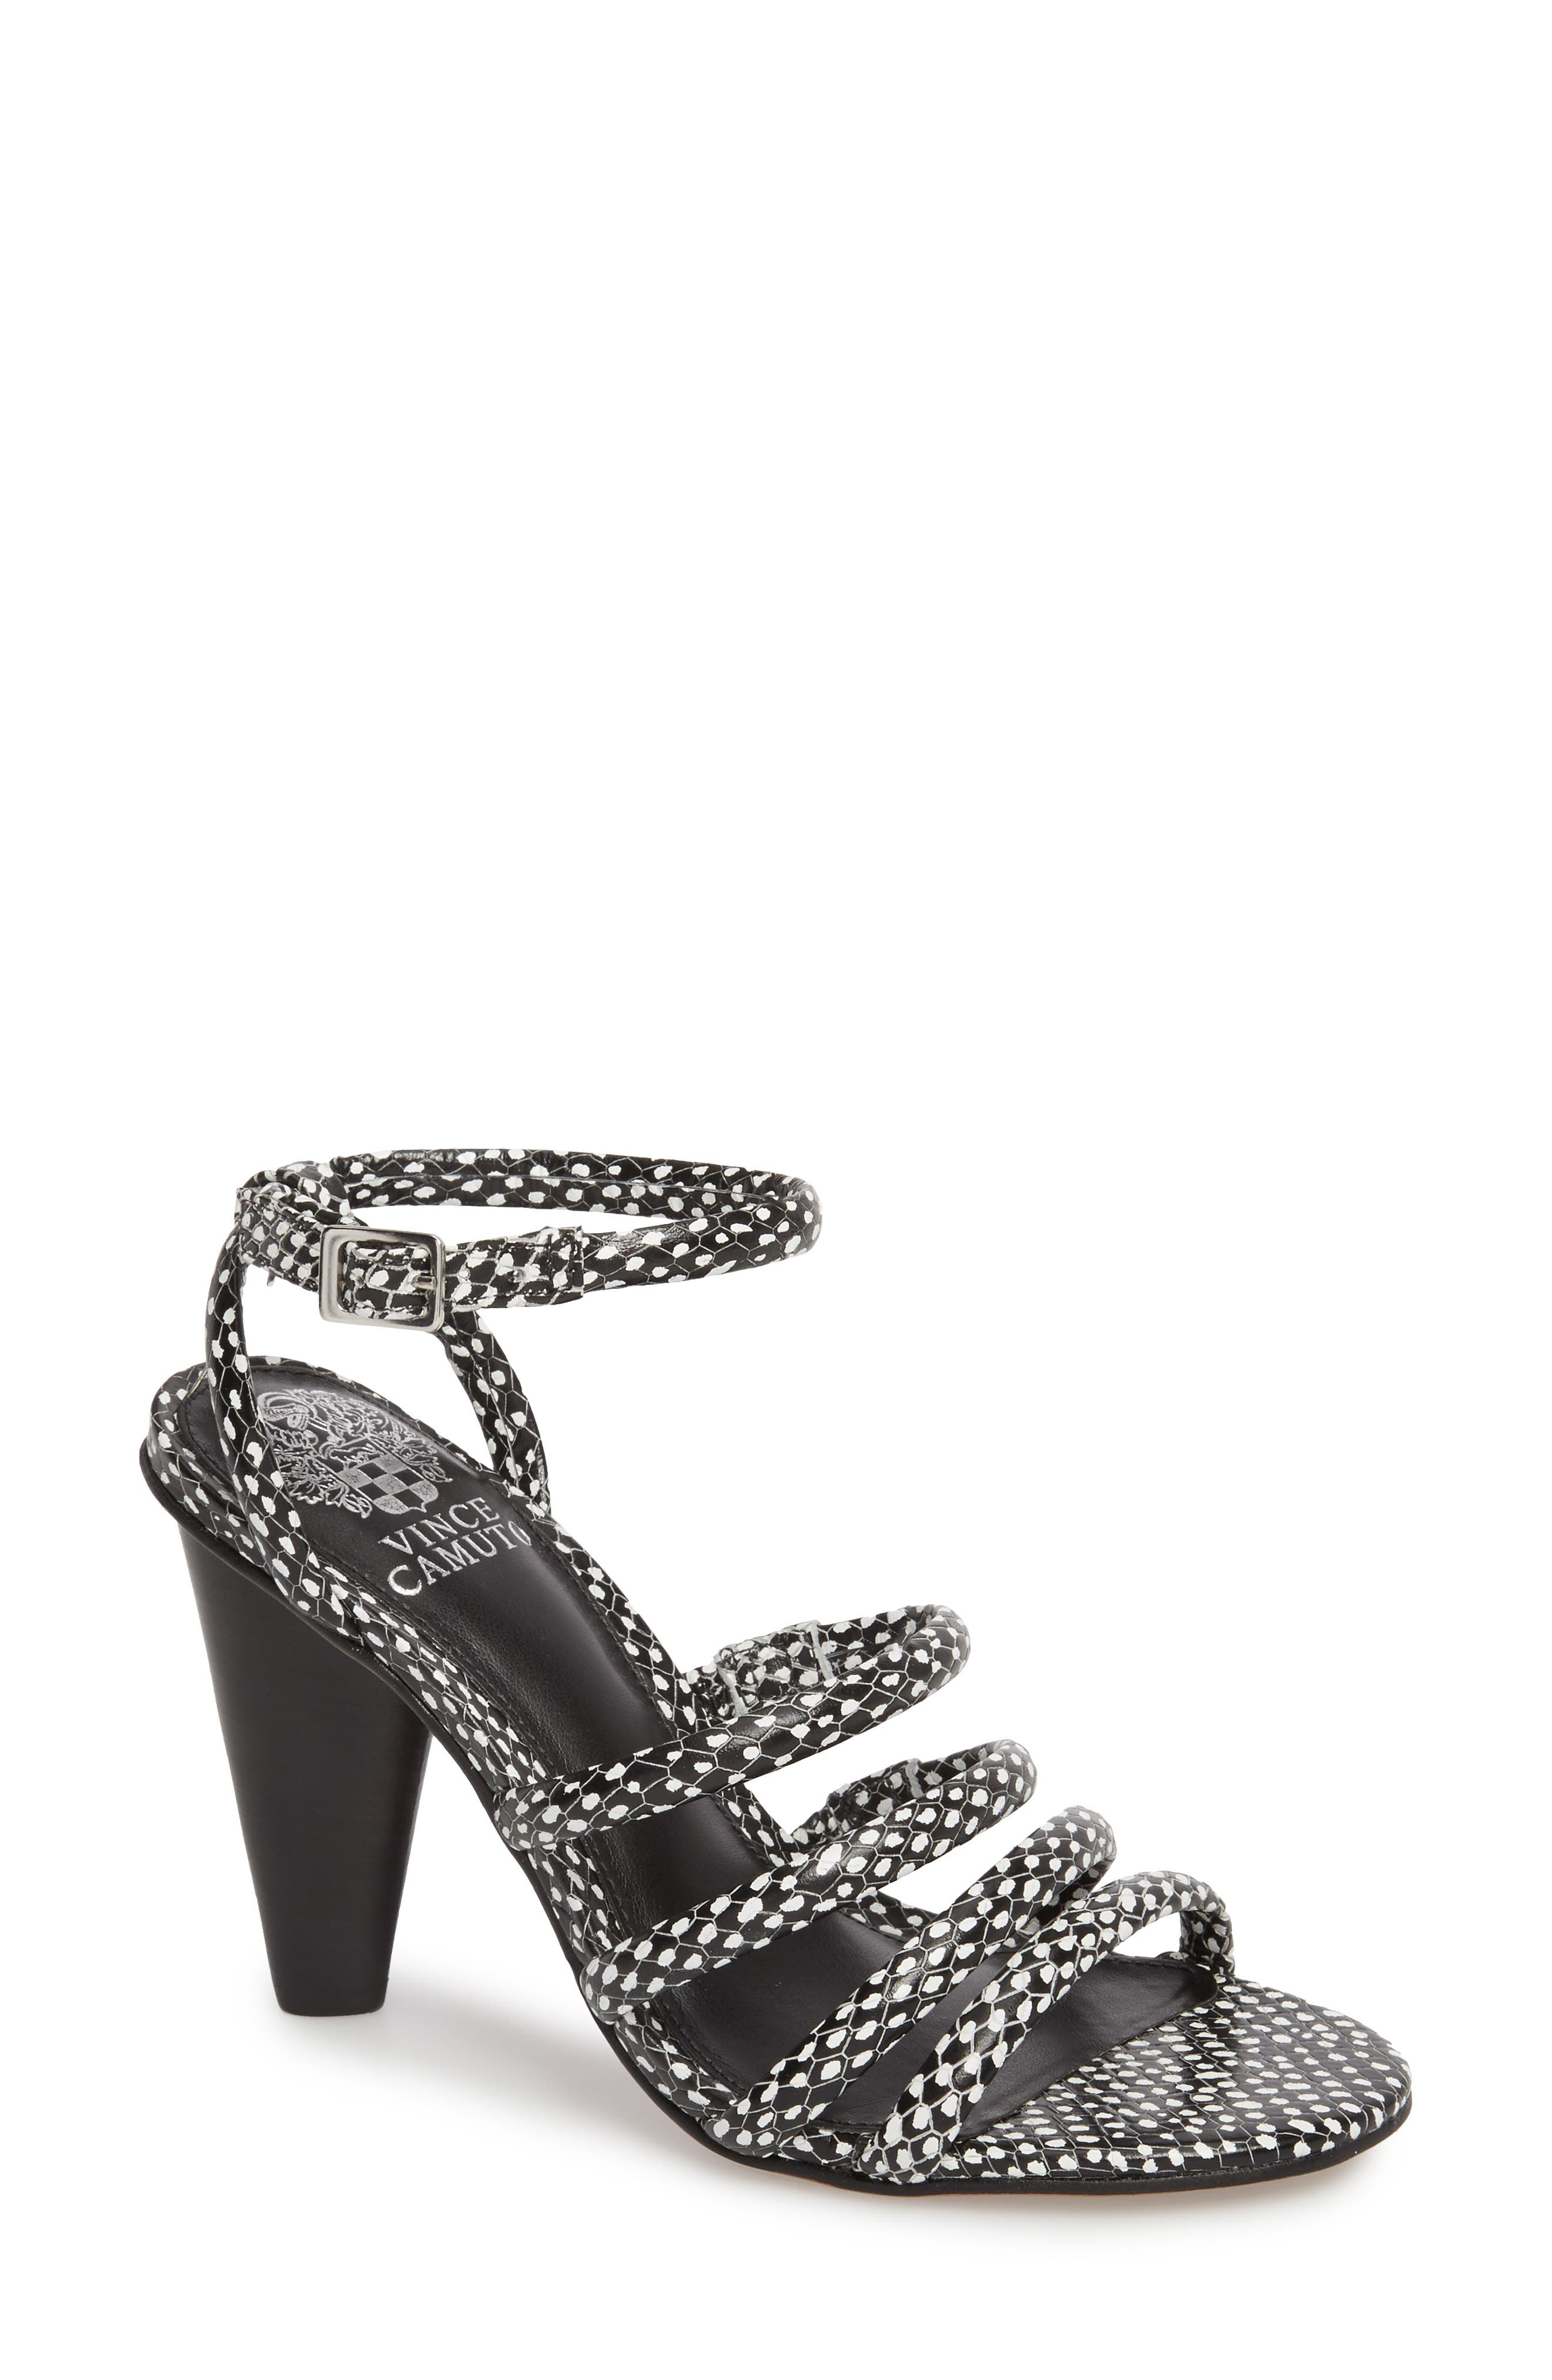 Kaniana Cone Heel Cage Sandal,                         Main,                         color, 002